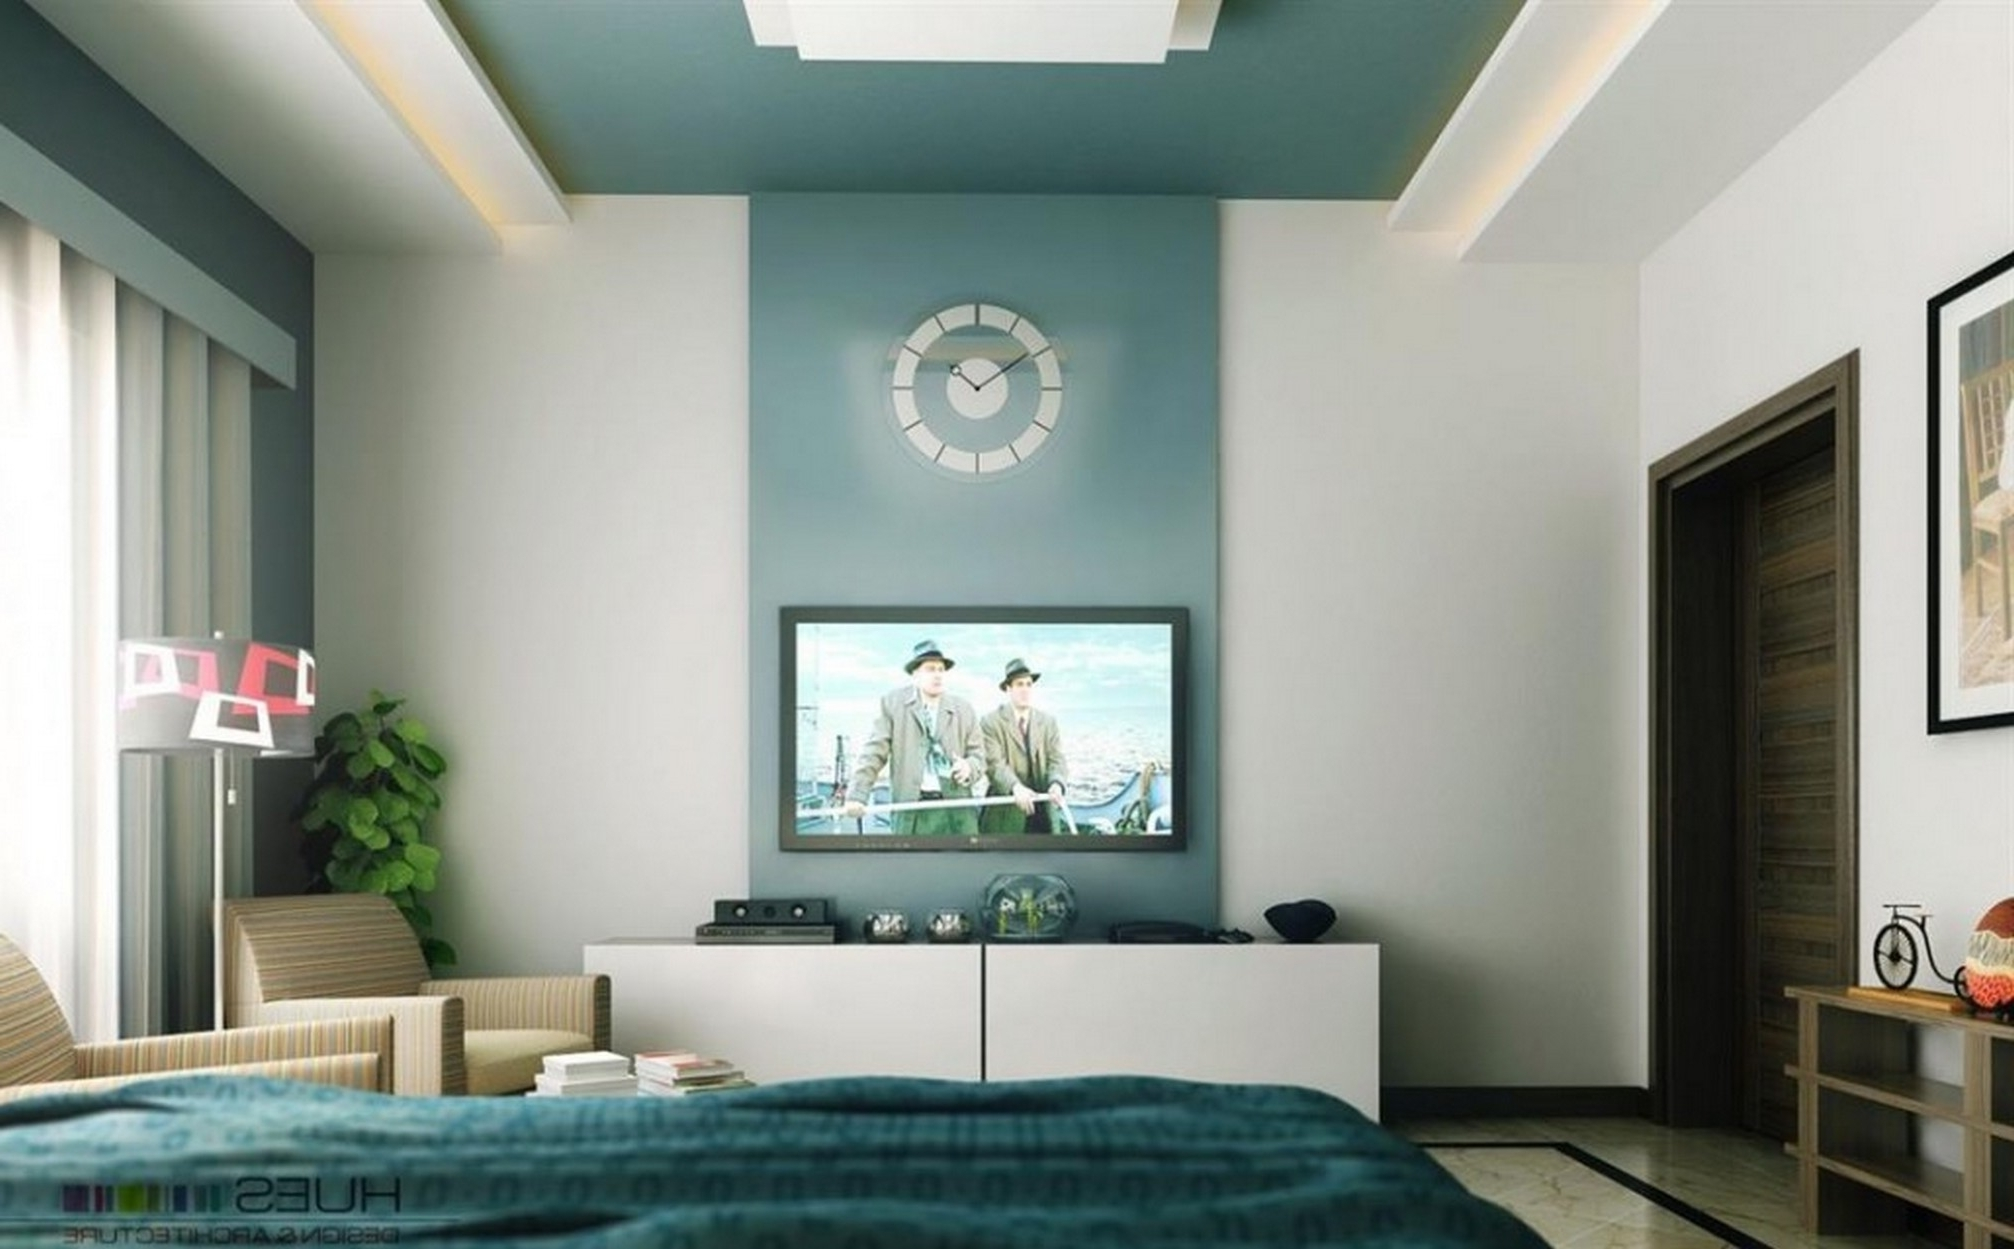 High Ceiling Wall Accents Regarding Trendy Accent Wall Color For High Walls With Round Clock Ideas And Tv On (Gallery 7 of 15)